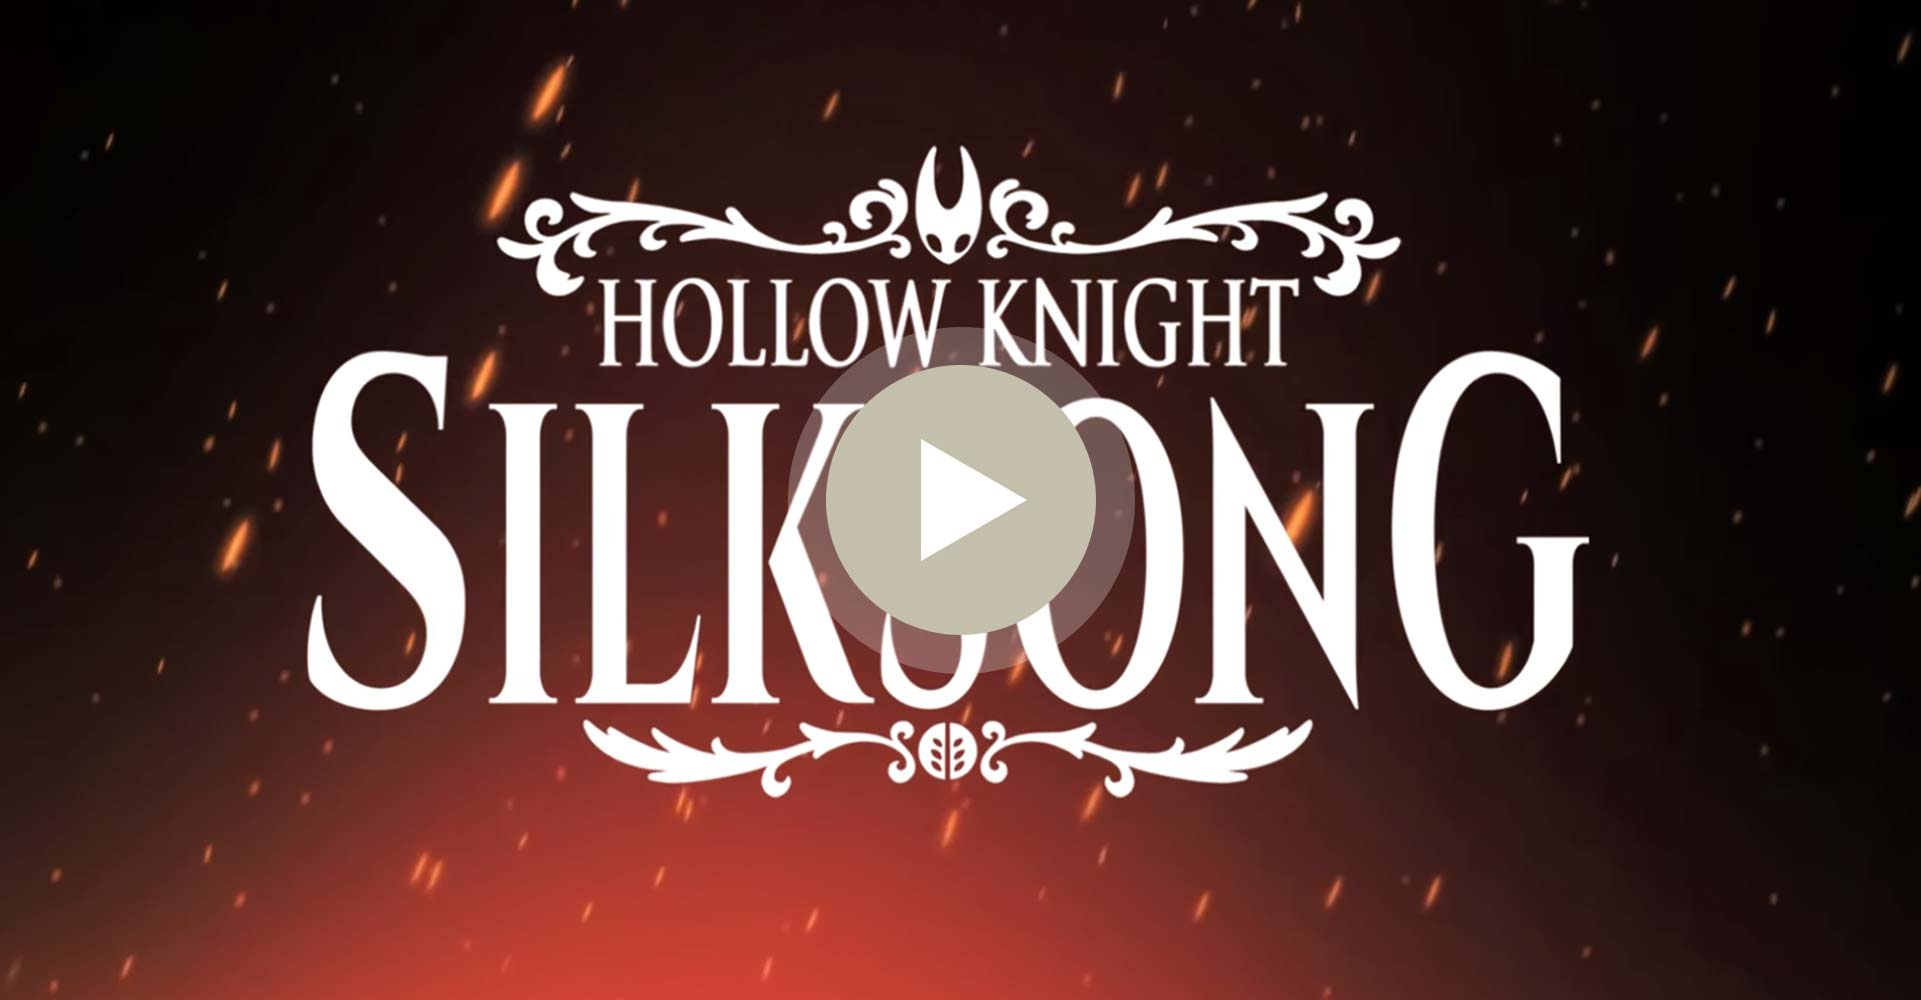 Hollow Knight: Silksong Soundtrack